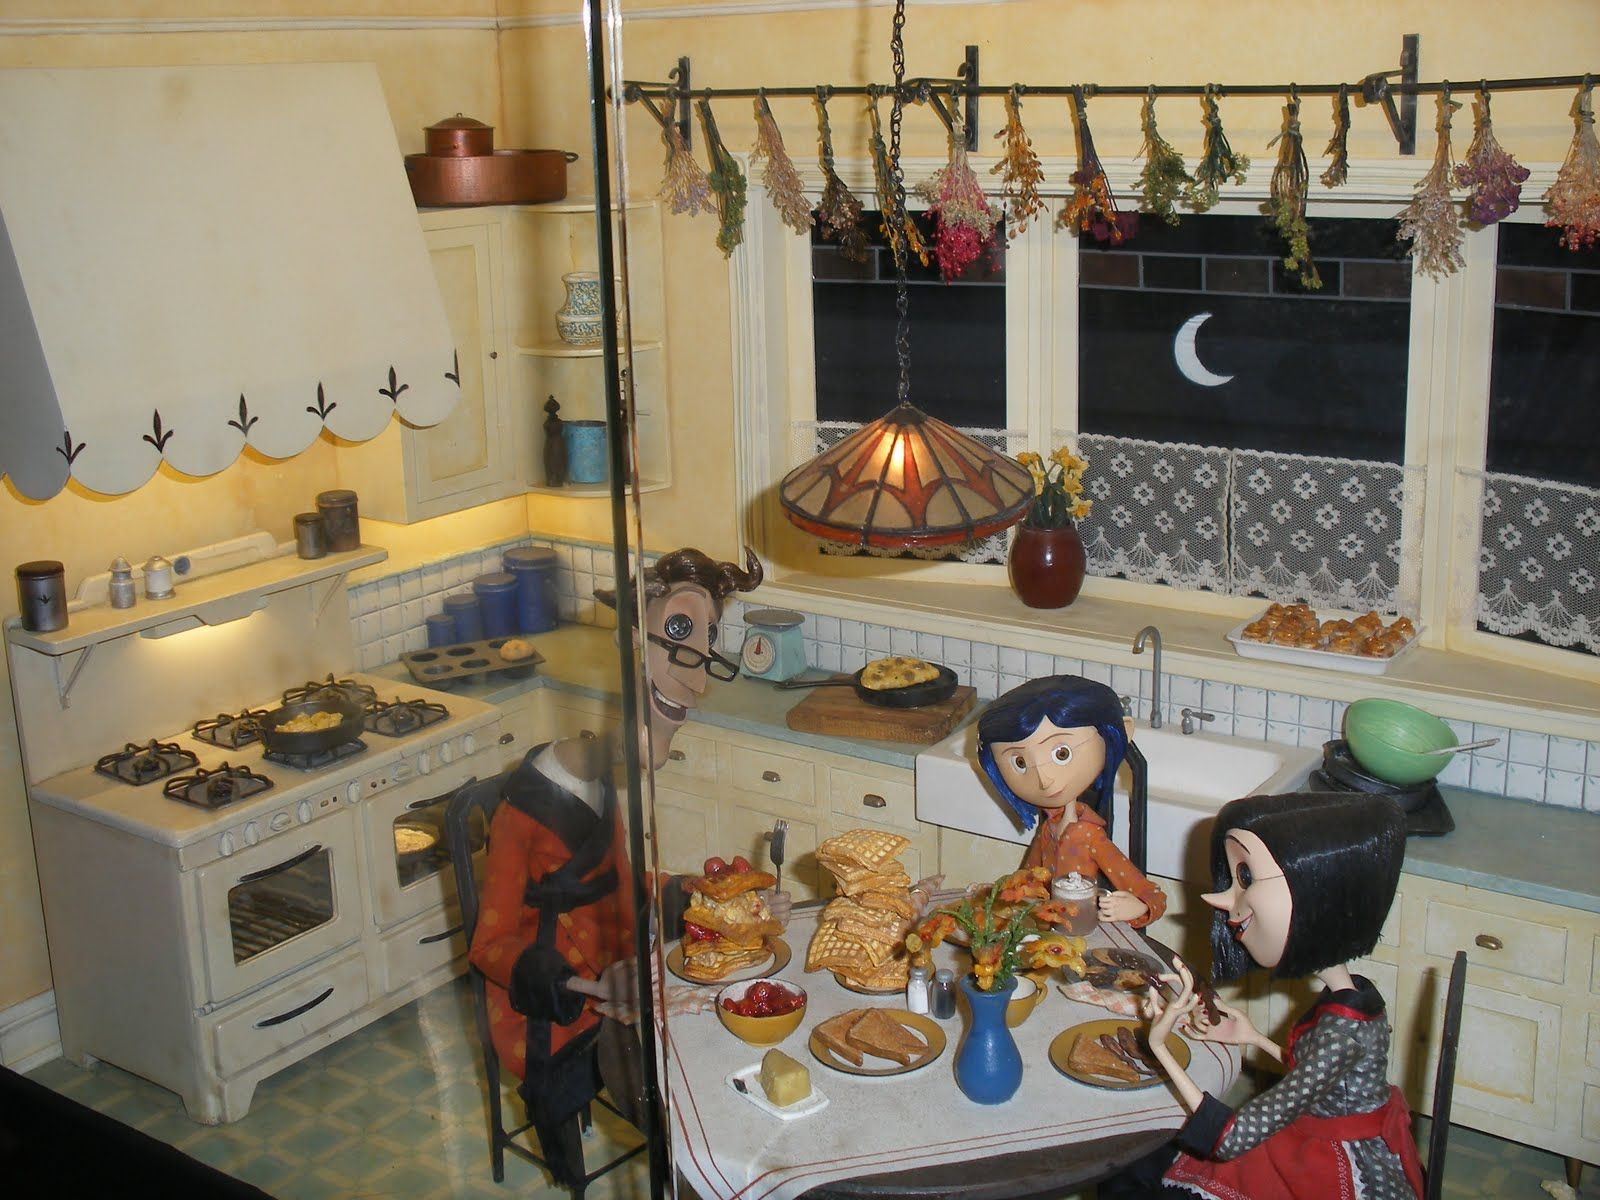 Pin By Melissa Powers On Esculturas Coraline Movie Coraline Coraline Aesthetic